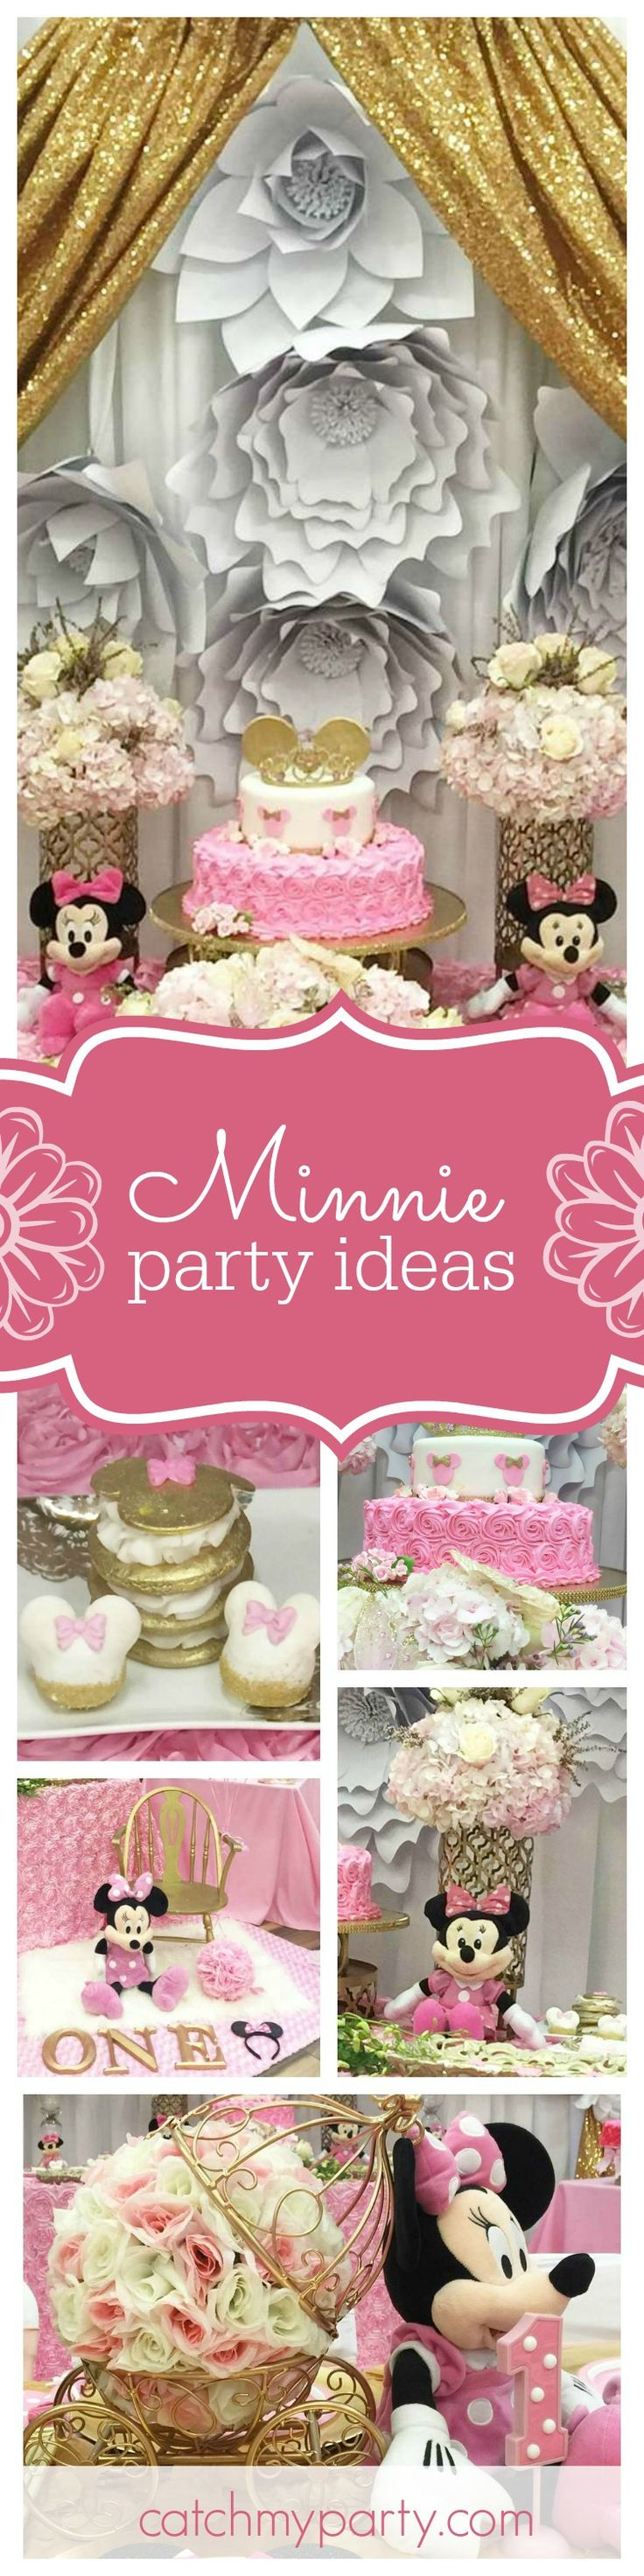 1129 best Minnie Mouse Party Ideas images on Pinterest Birthday